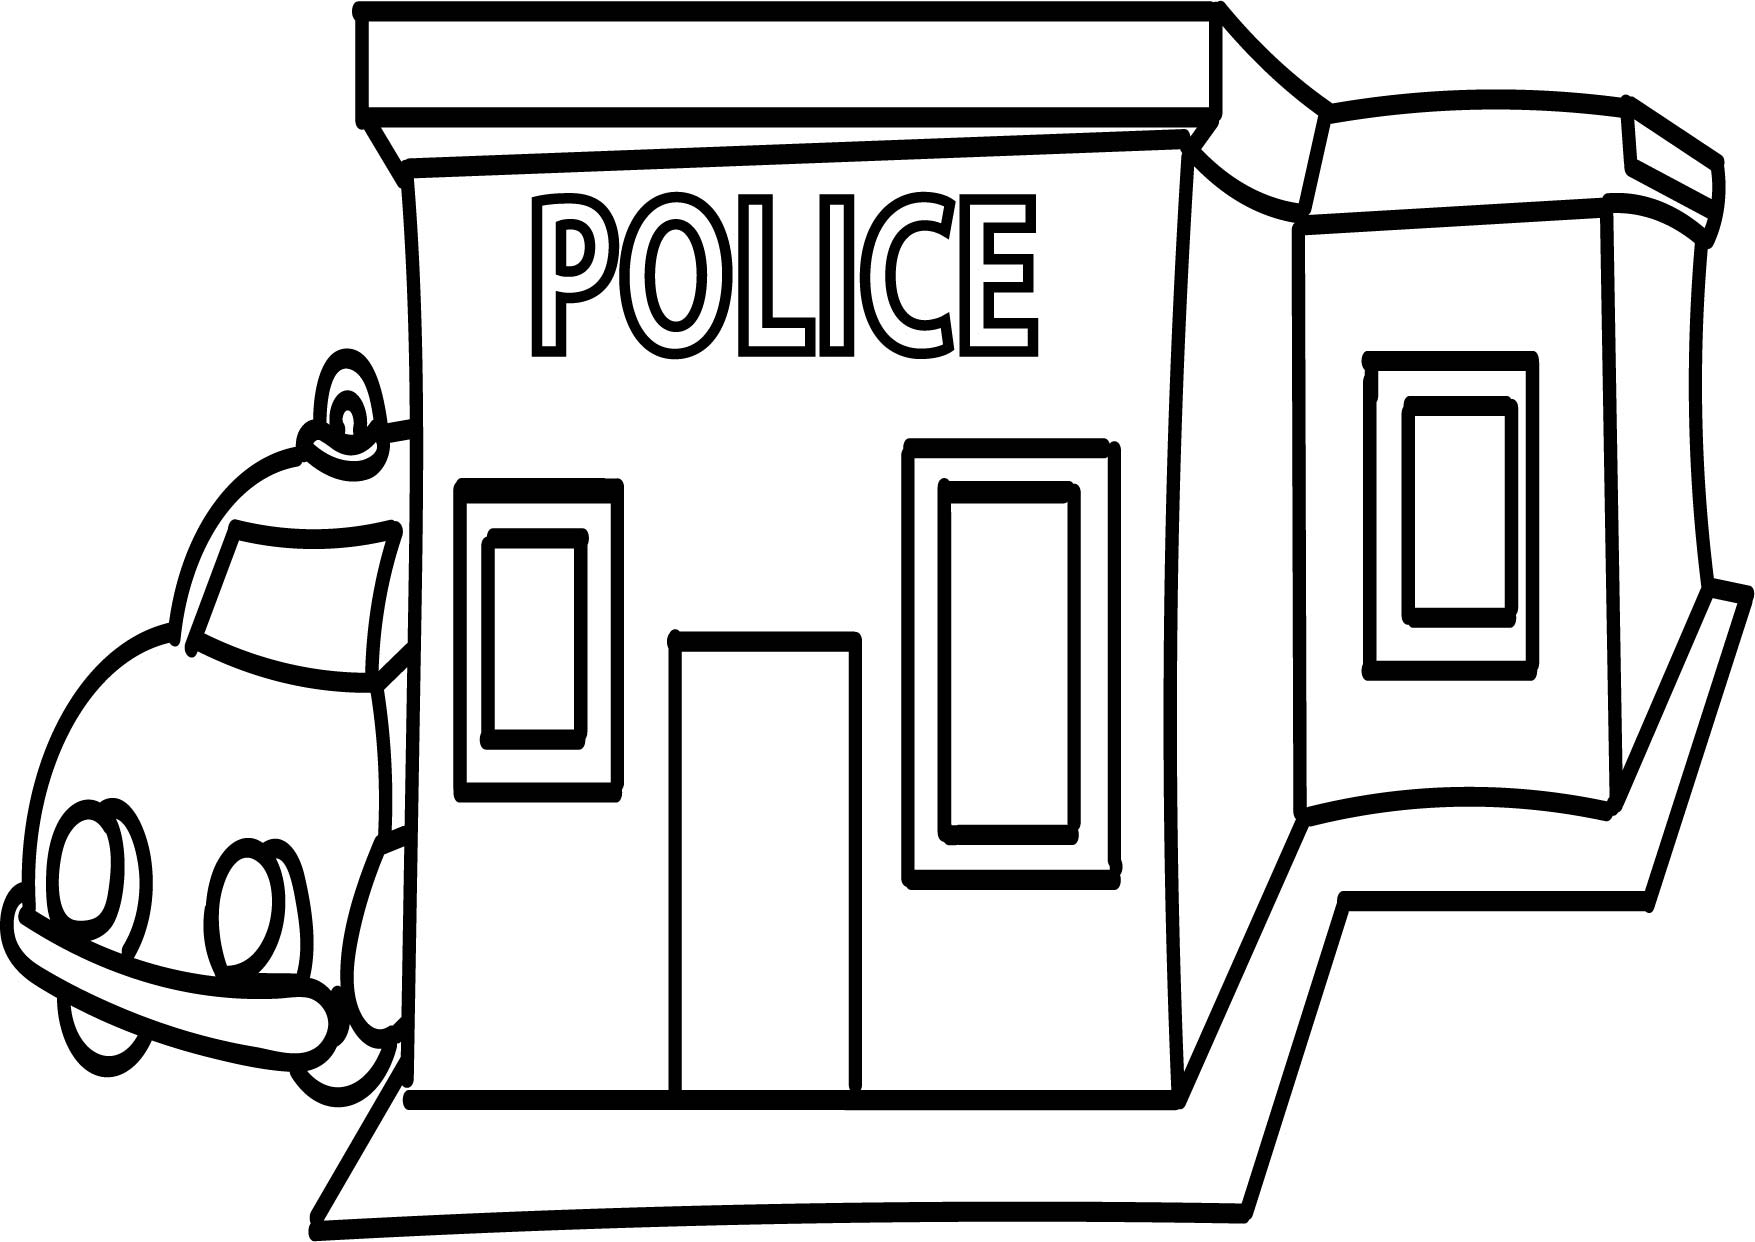 Police Station Clipart Black And White 9